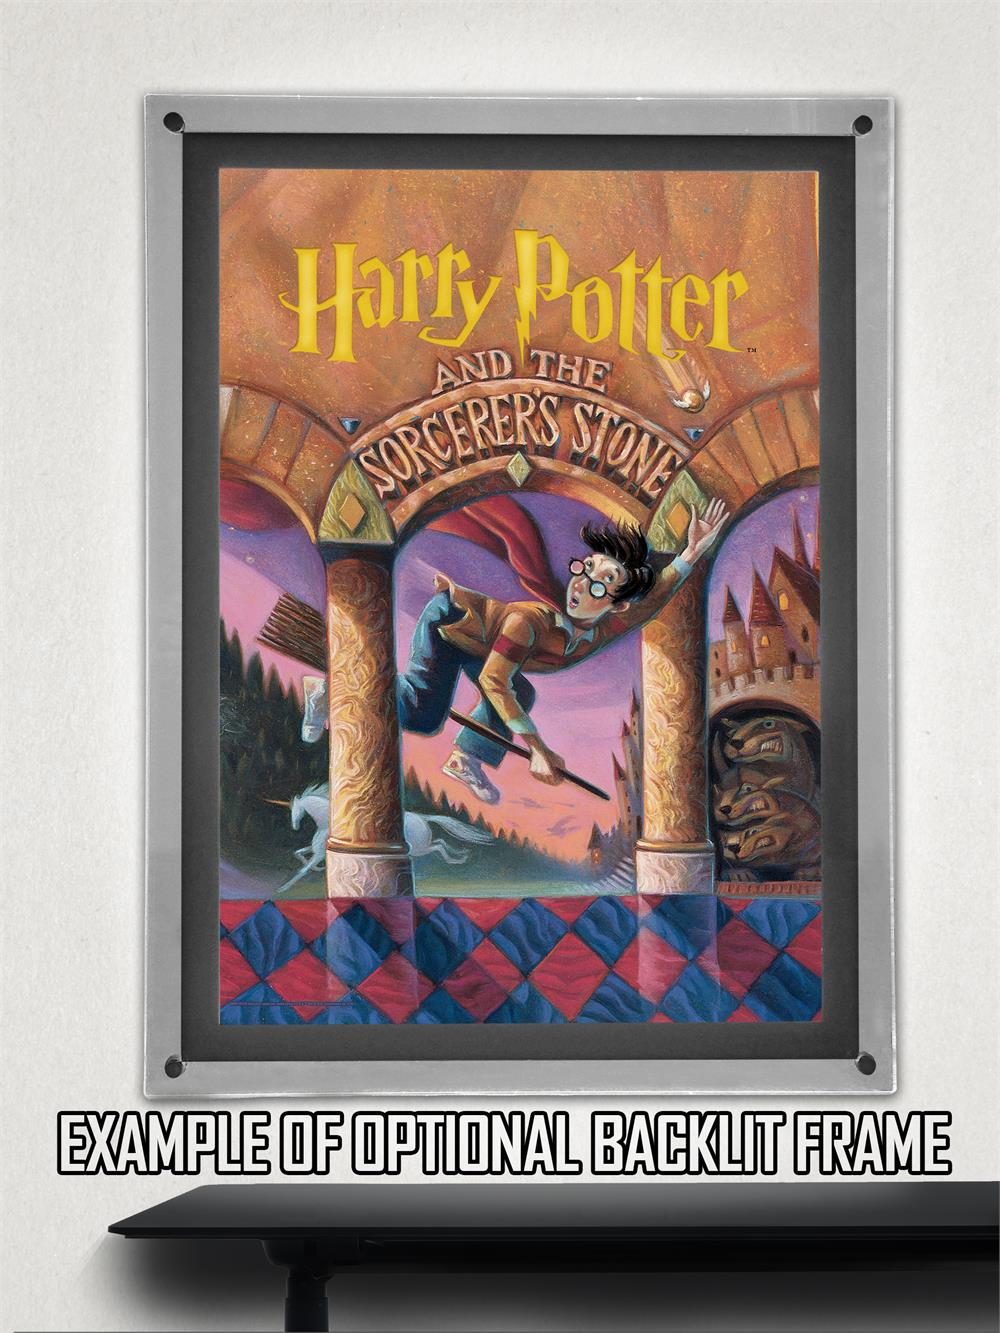 Book Cover Wall Art : Harry potter book cover sorcerers stone mightyprint